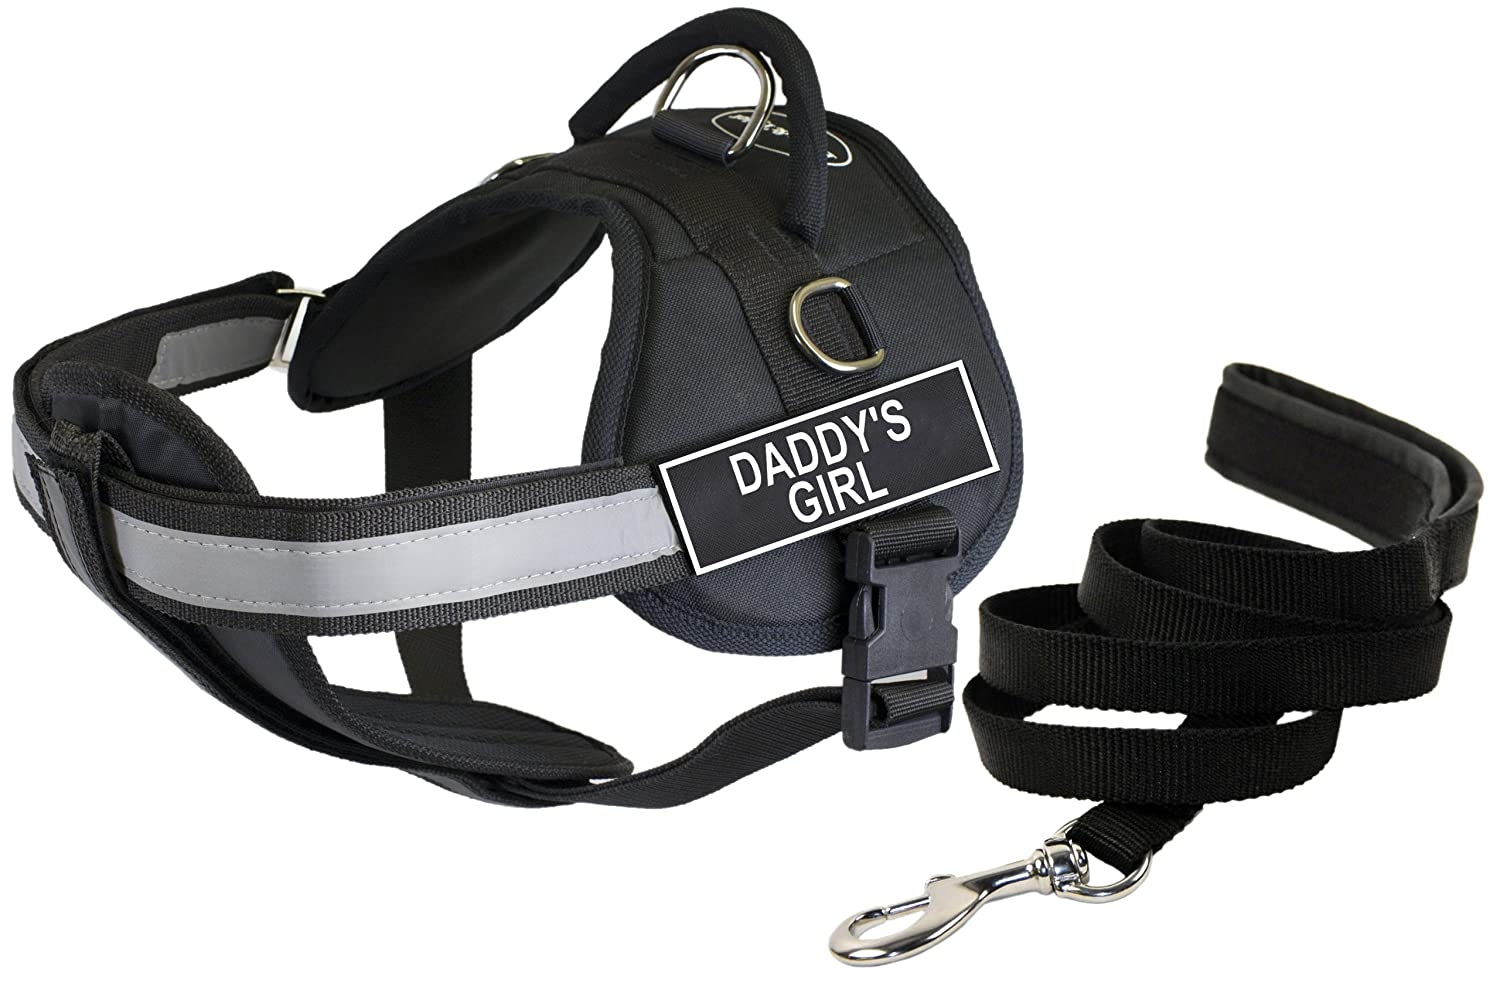 Dean & Tyler DT Works Daddy' Daddy' Daddy' S Girl Torace Imbracatura con Imbottitura, M, e 1,8 m Padded Puppy guinzaglio. 729229